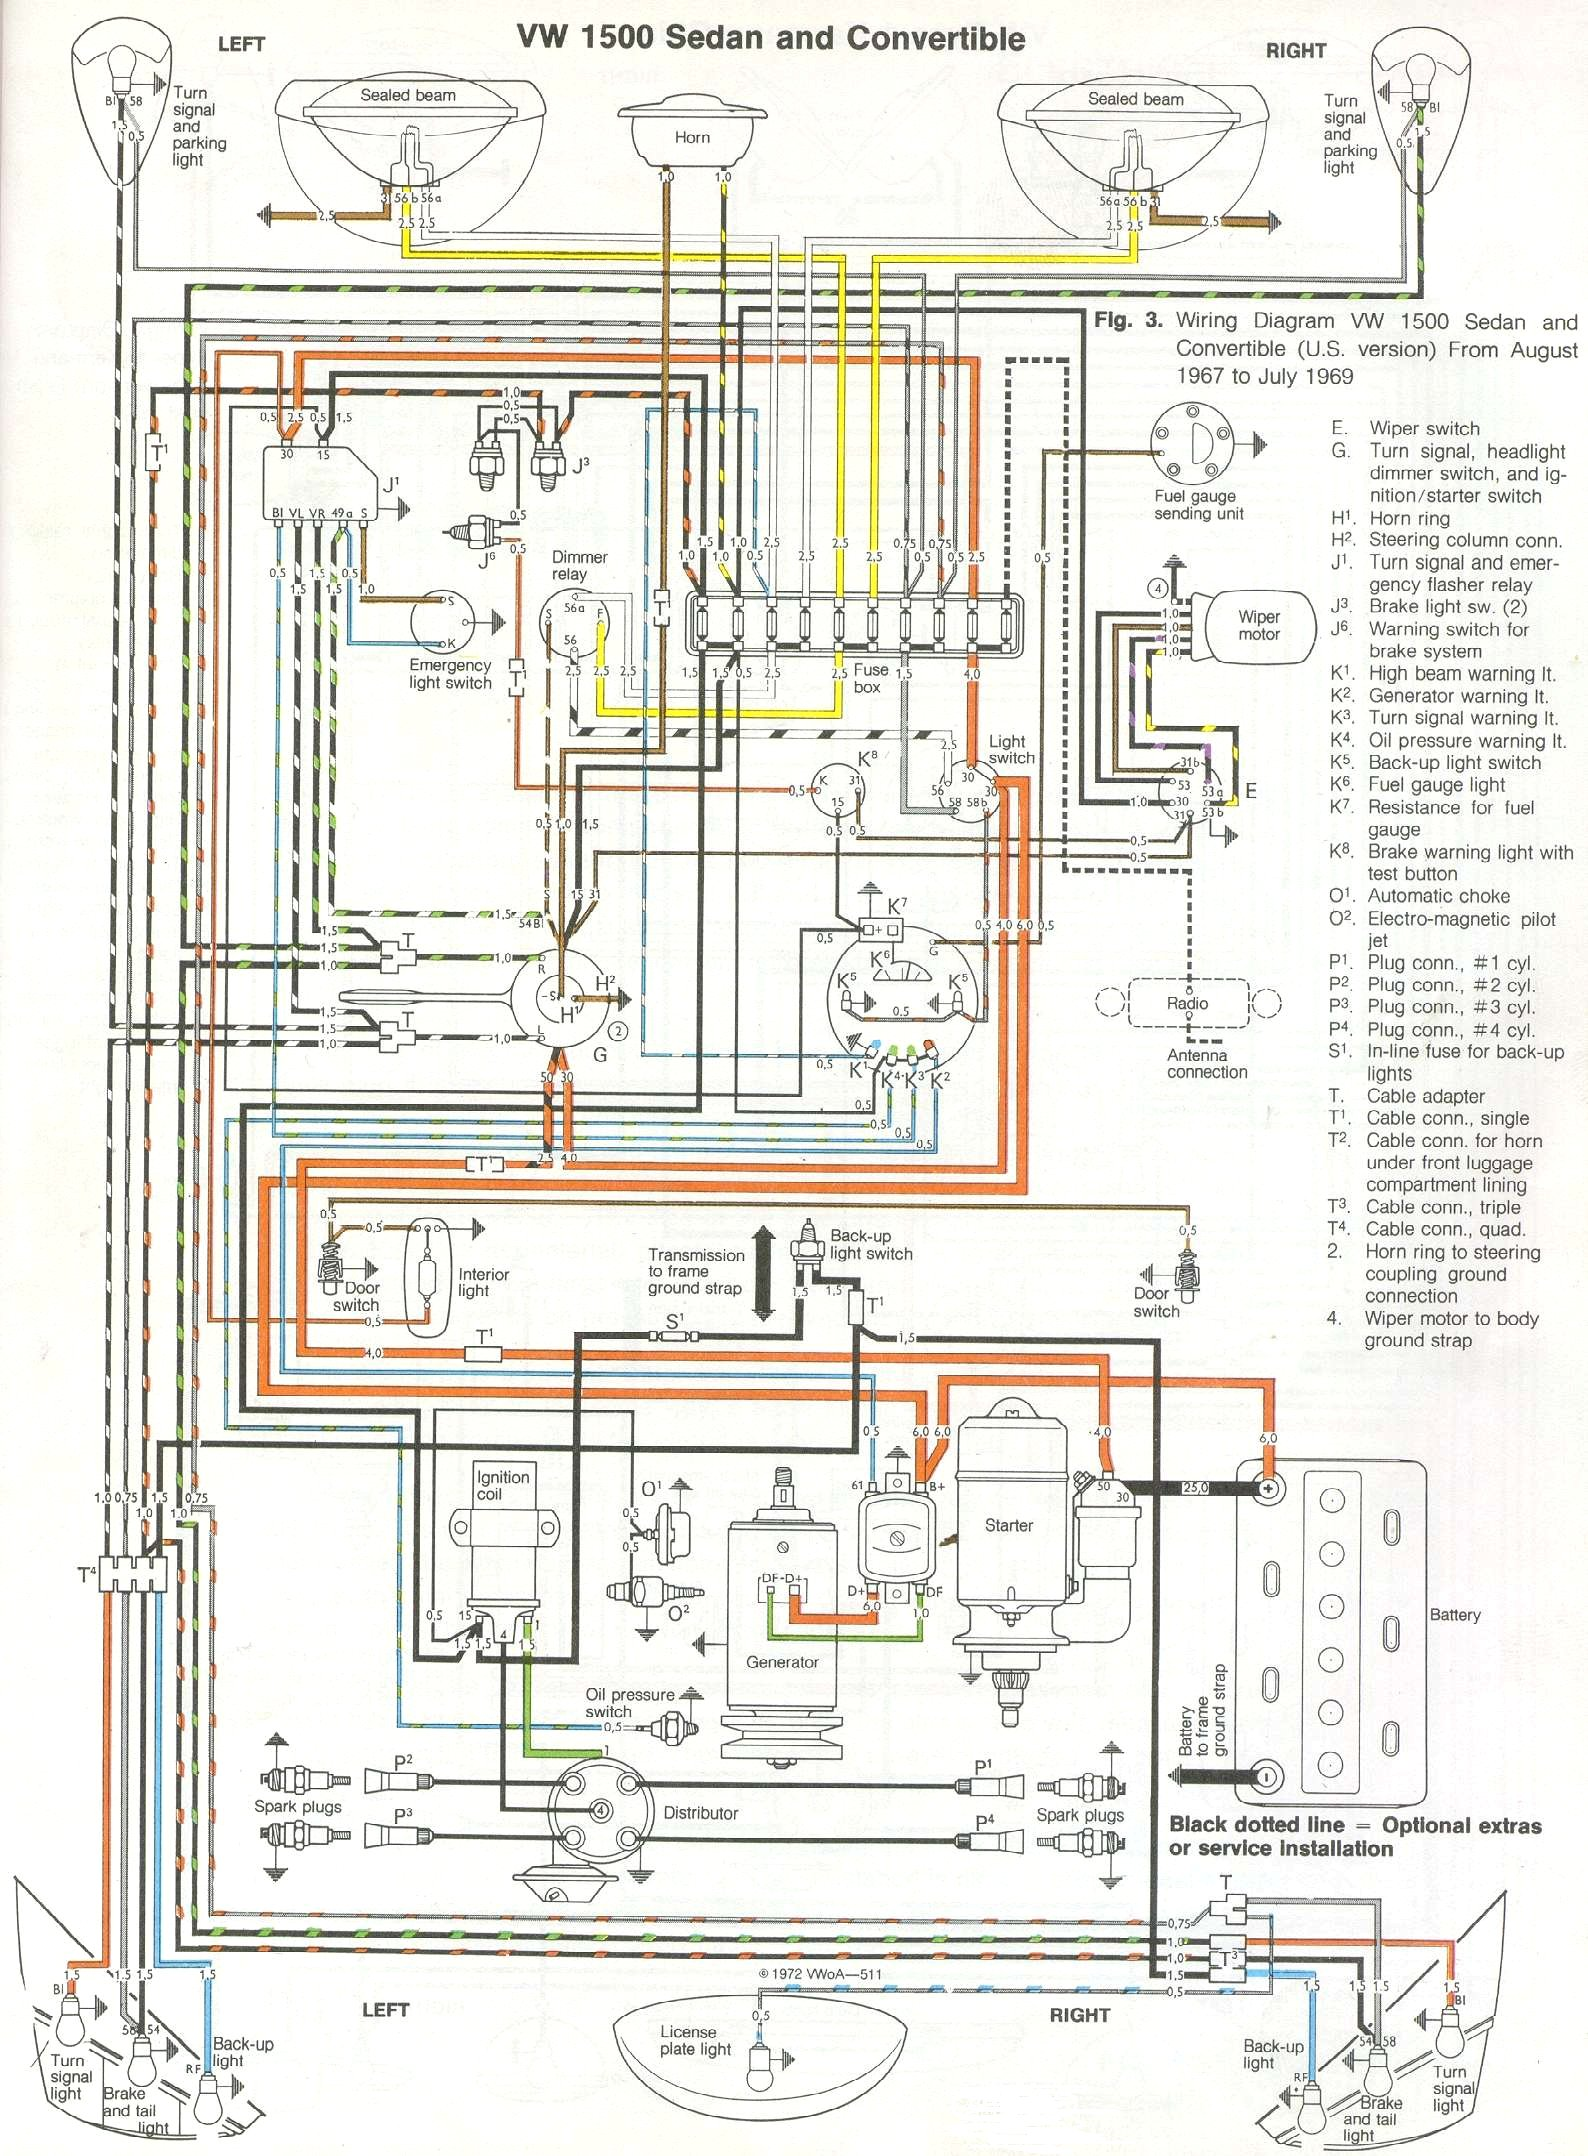 bug_6869 1968 69 beetle wiring diagram (usa) thegoldenbug com 1968 vw bug wiring diagram at aneh.co